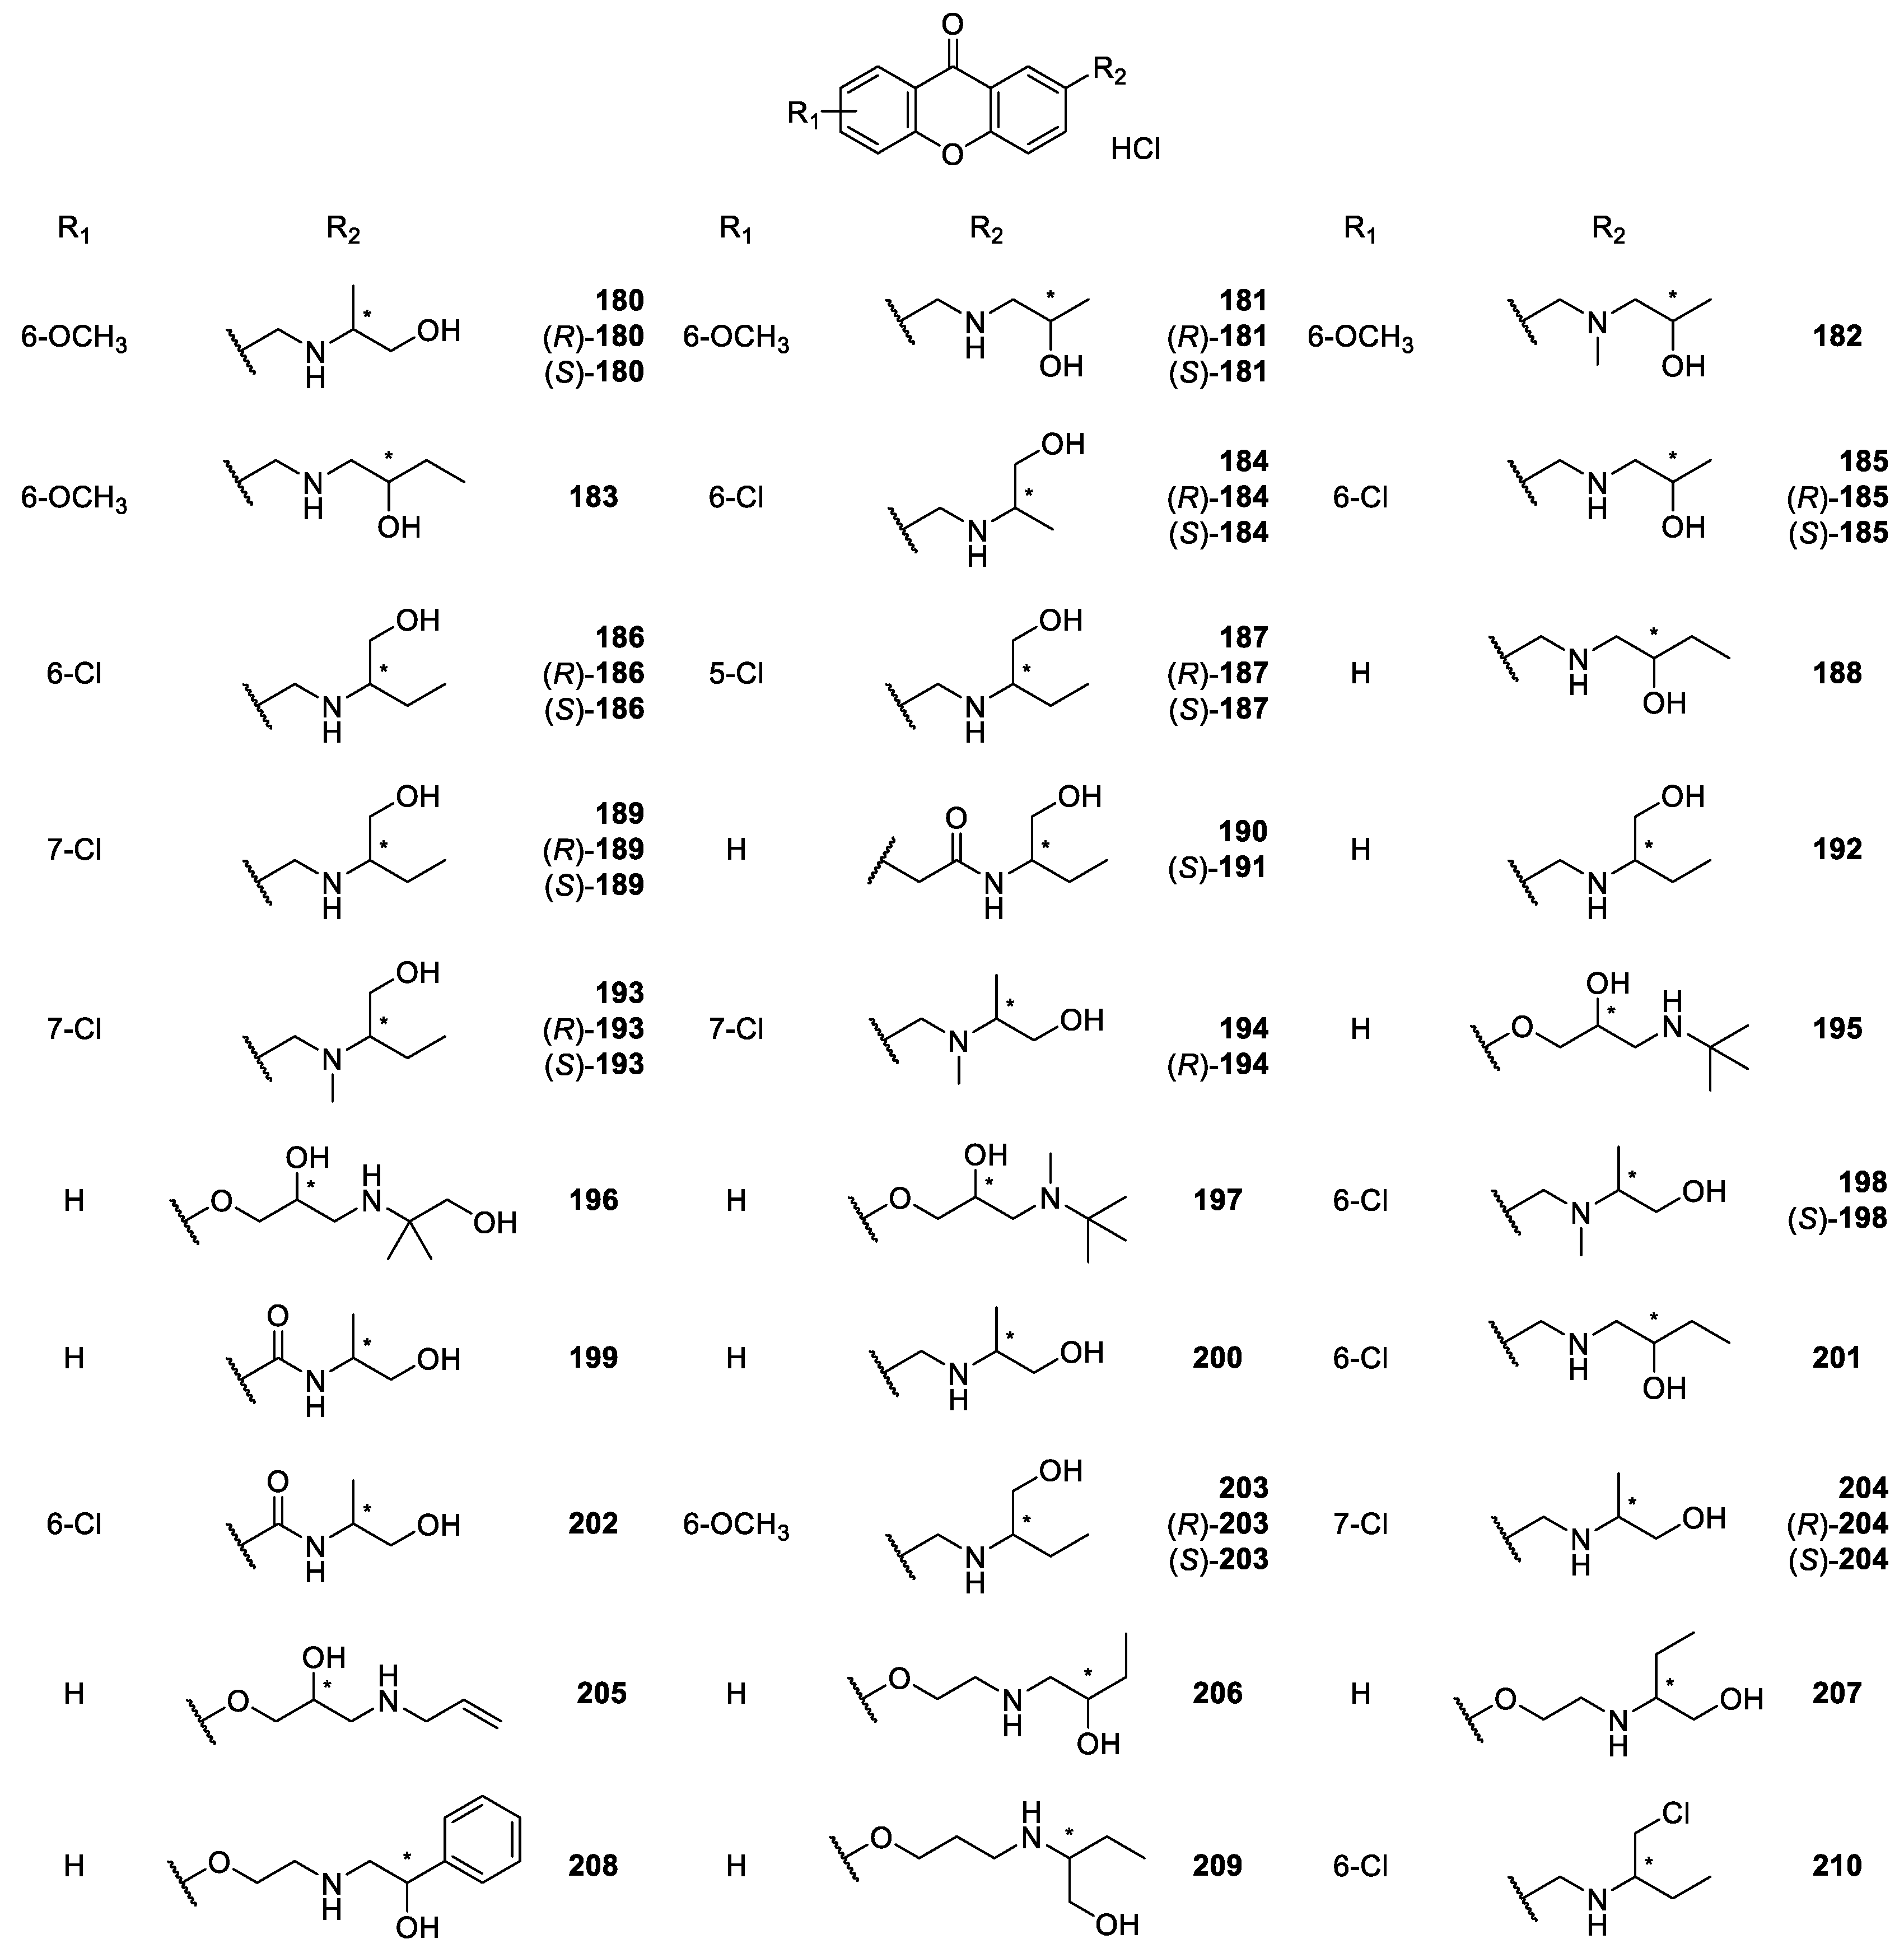 Molecules | Free Full-Text | Synthetic Chiral Derivatives of